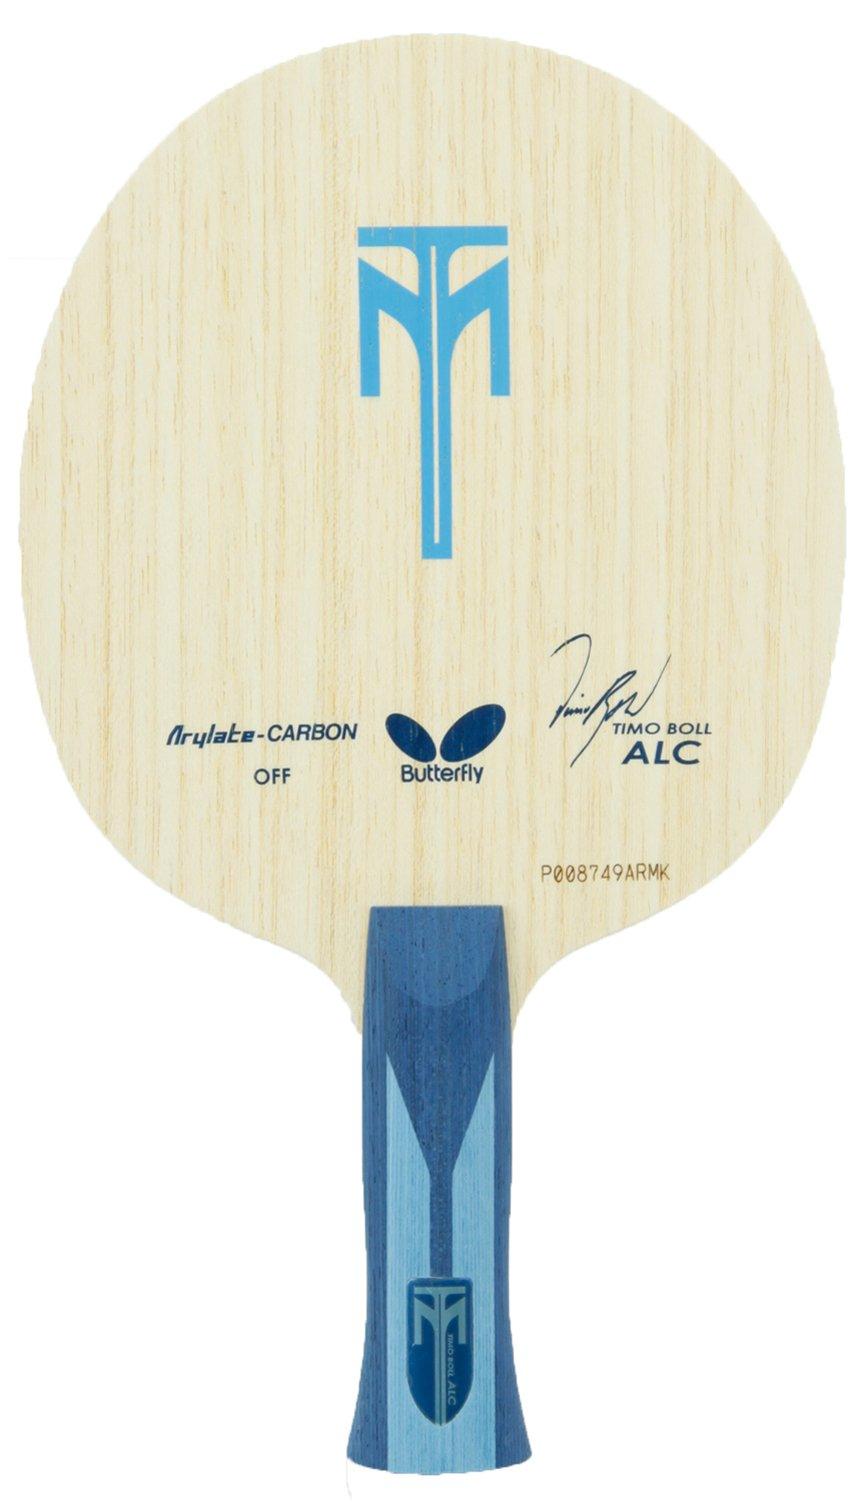 Butterfly Timo Boll Alc-AN Blade with Anatomic Handle